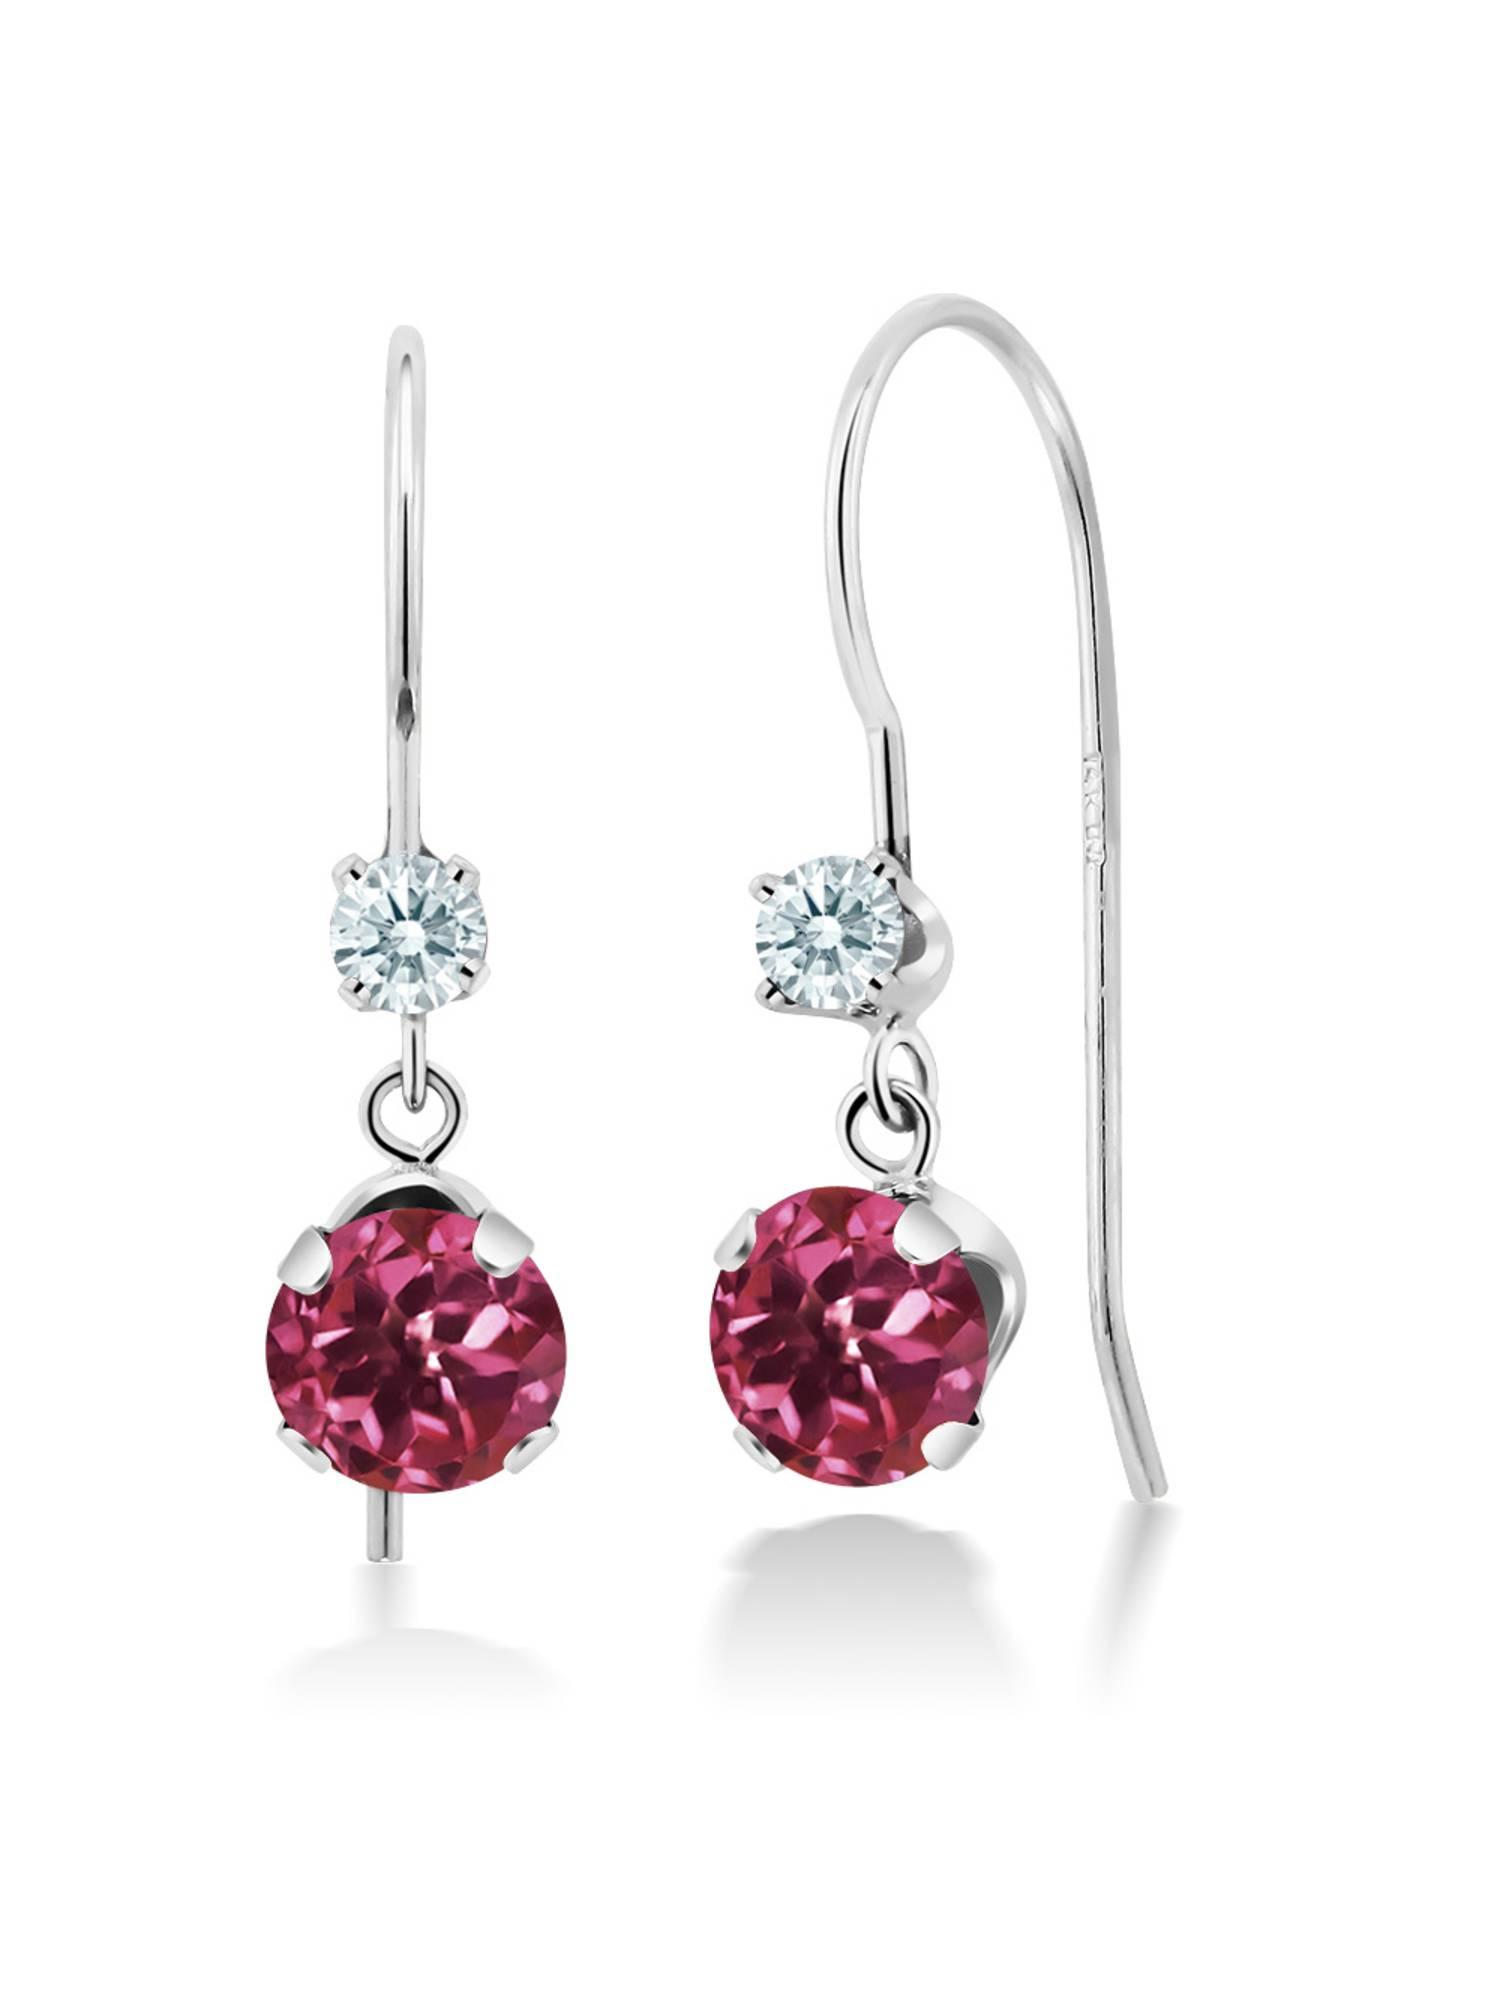 1.10 Ct Pink Tourmaline 14K White Gold Earrings Made With Swarovski Zirconia by